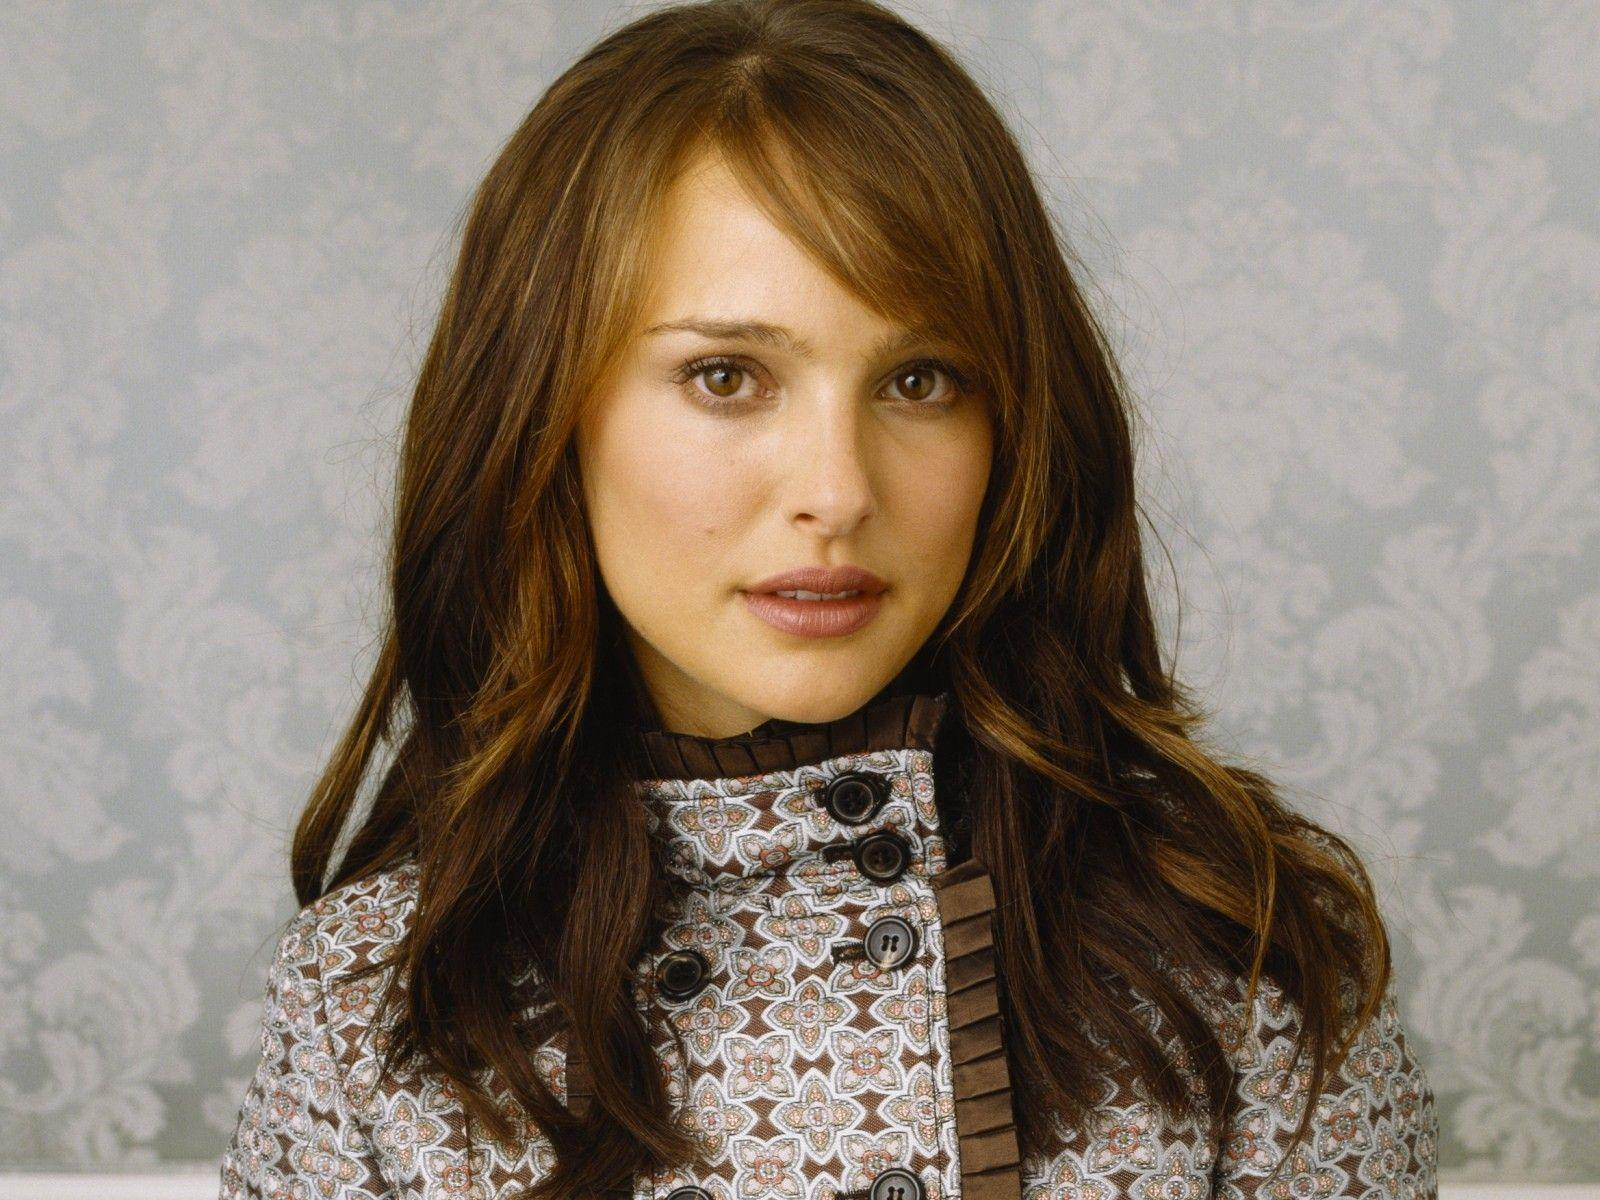 Natalie Portman Wallpapers awsome Widescreen photo gallery hd ...